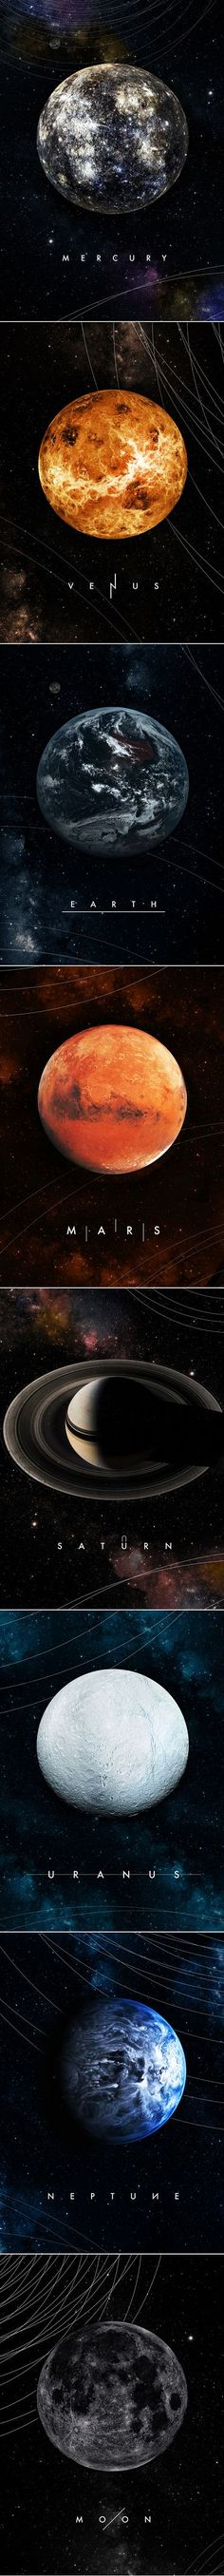 the solar system Cosmos, Space Planets, Space And Astronomy, Fosse Commune, Cv Inspiration, Space Travel, Space Exploration, Milky Way, Science And Nature